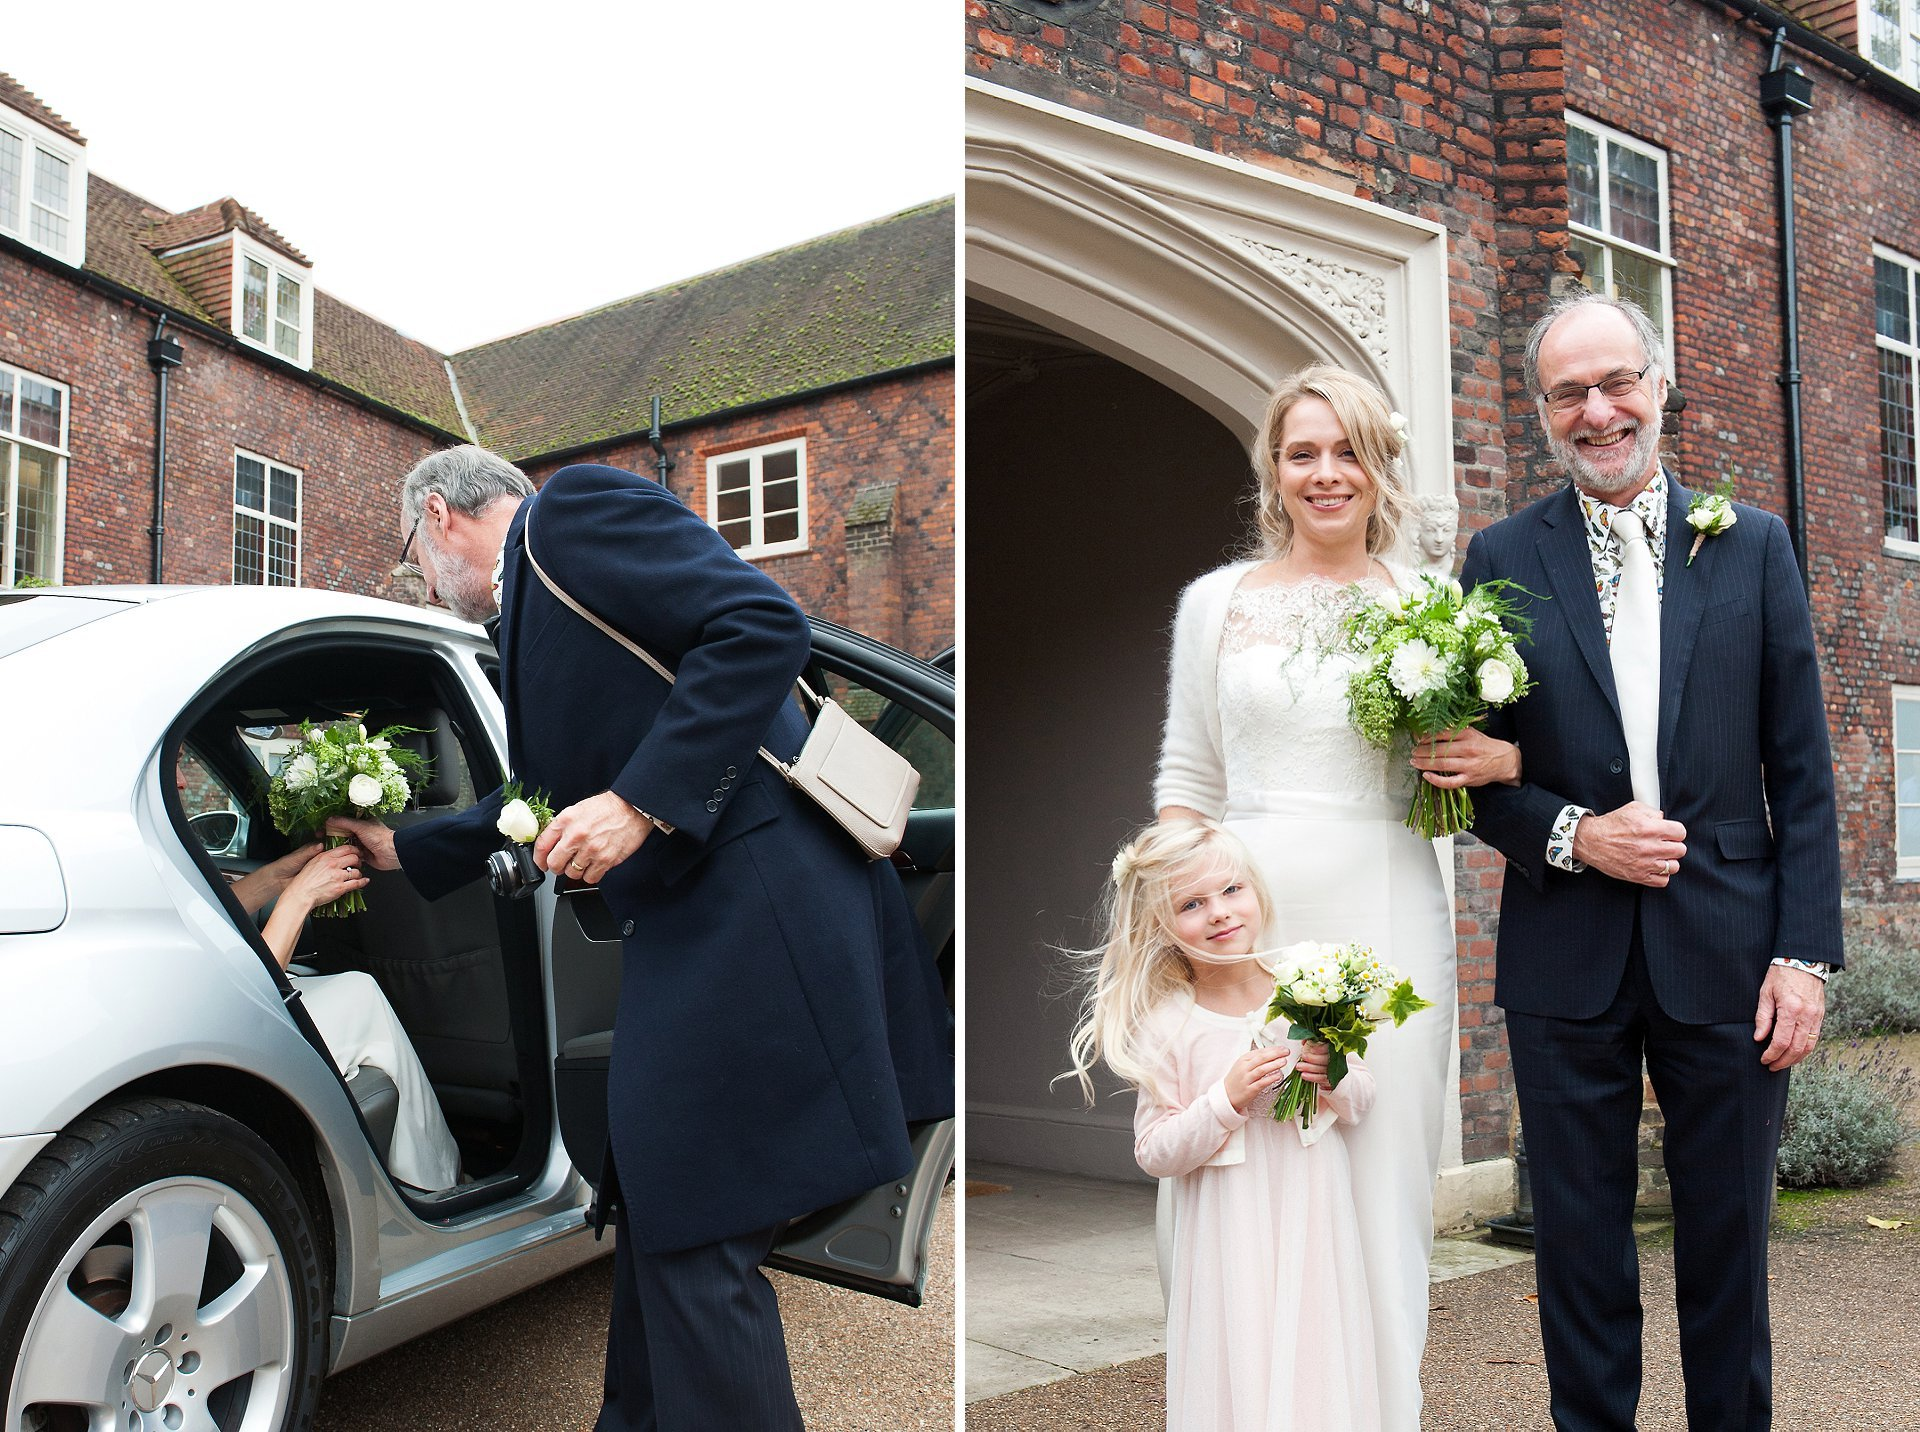 Bride, her father and daughter arrive in Fulham Palace's historic courtyard with fountain for a civil ceremony